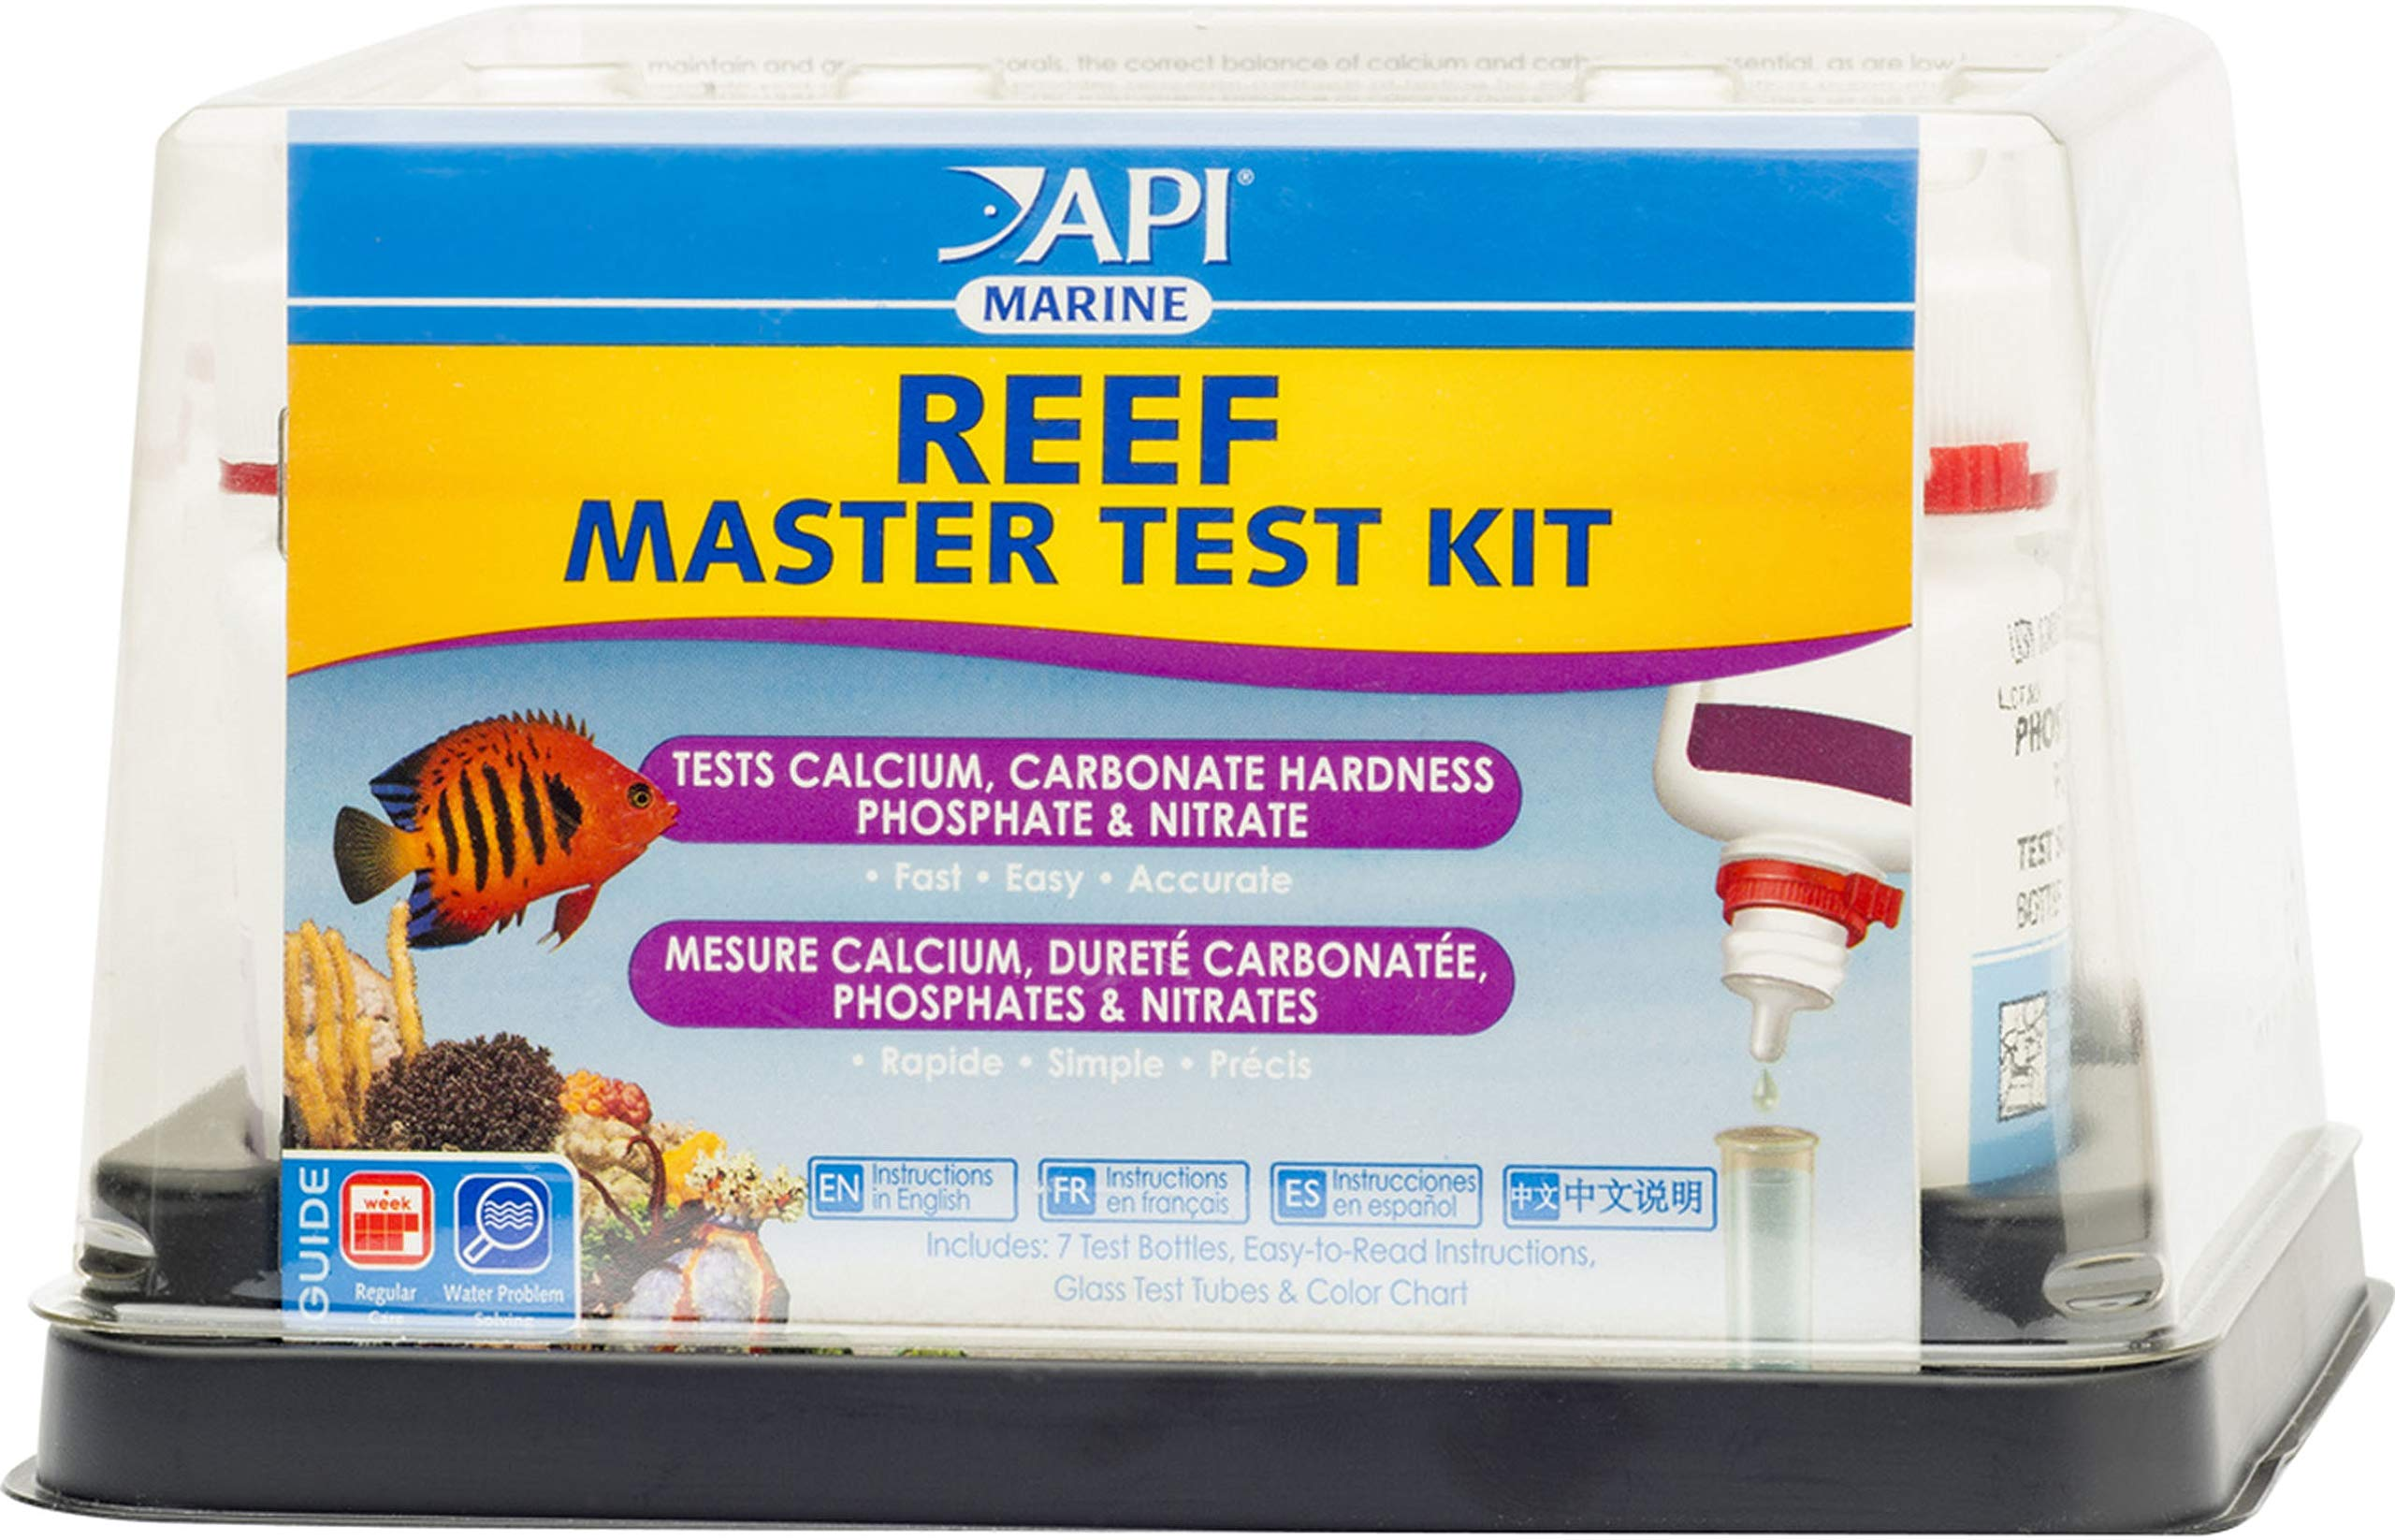 MARS FISHCARE NORTH AMER Reef Master Test Kit 25 Count